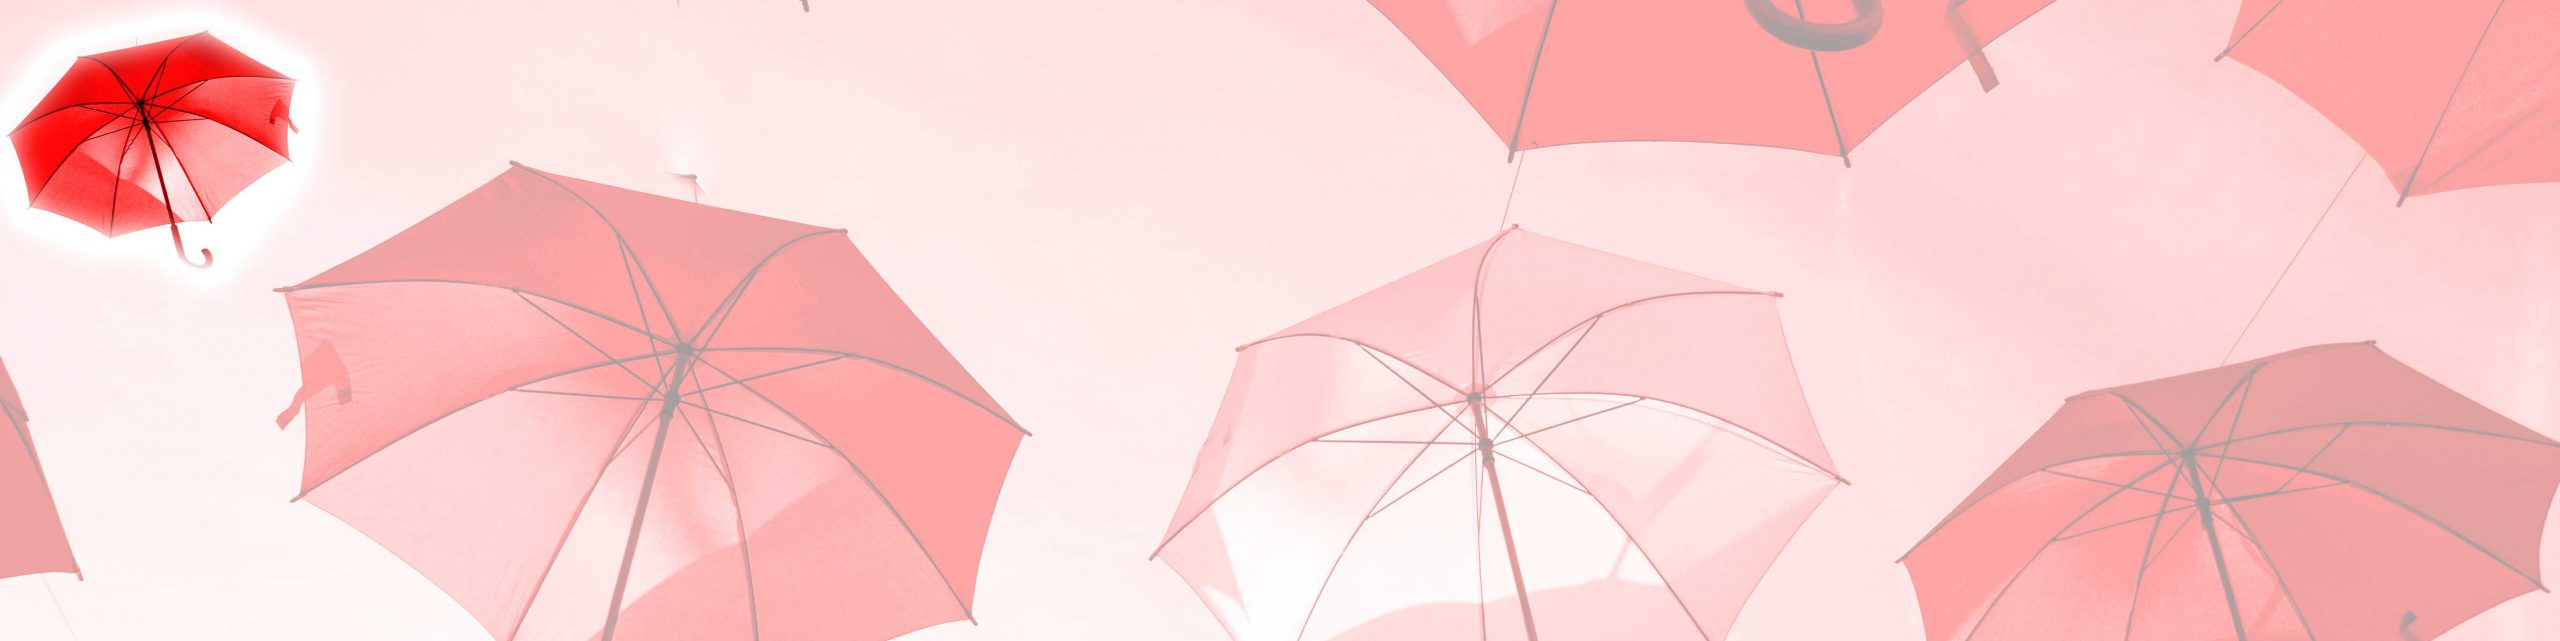 cropped-red_umbrellas-in-the-sky.jpg